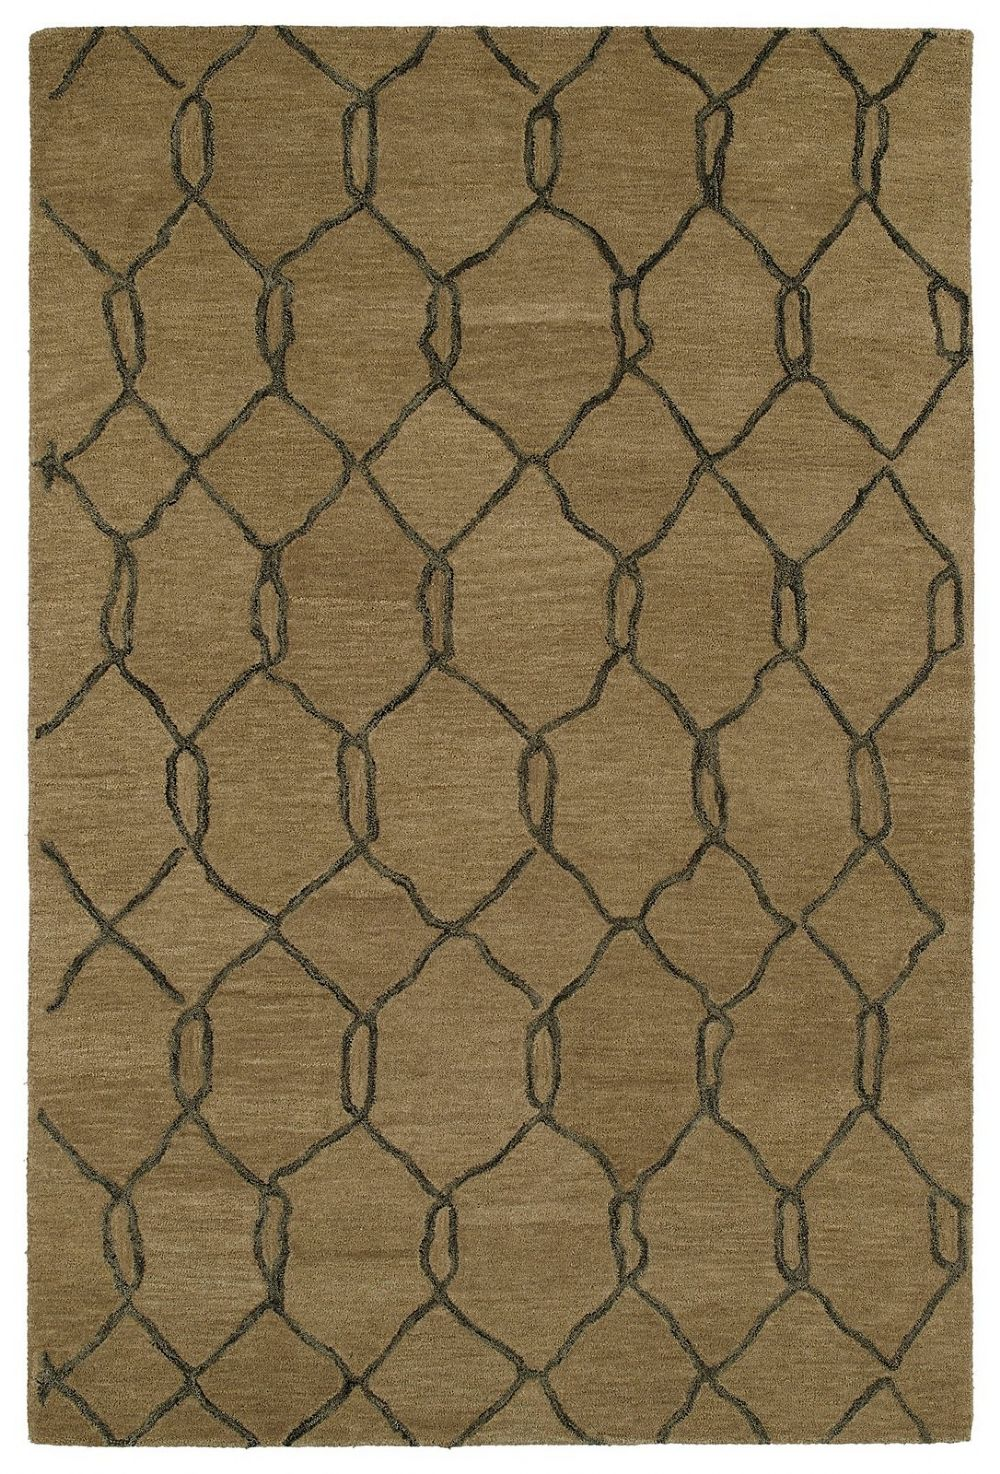 kaleen casablanca contemporary area rug collection